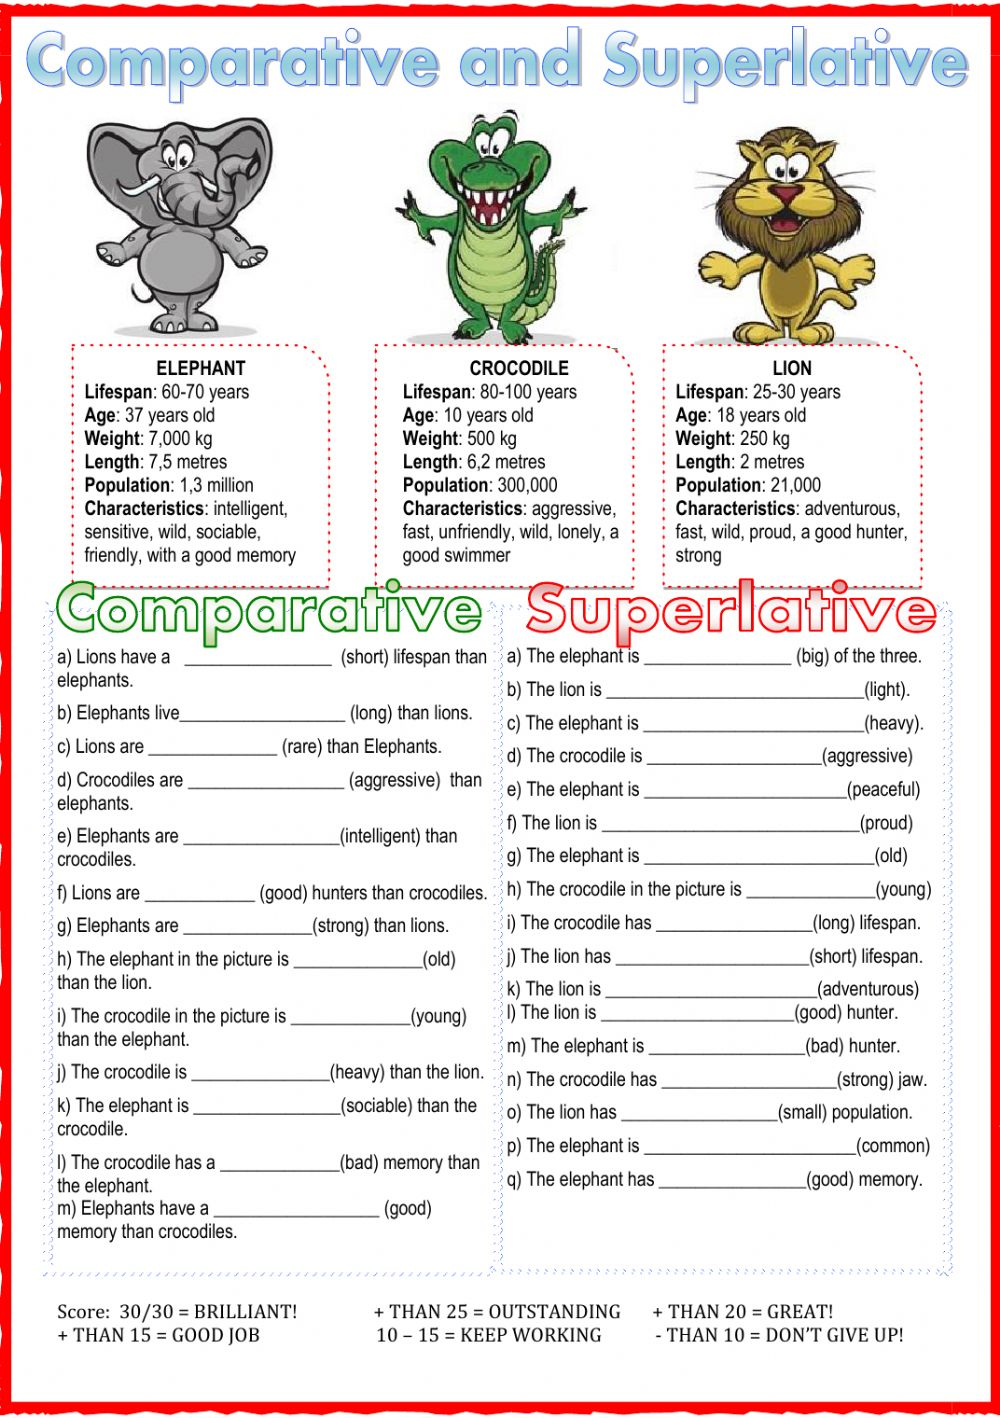 Worksheets Comparatives And Superlatives Worksheets comparative and superlative interactive worksheet text